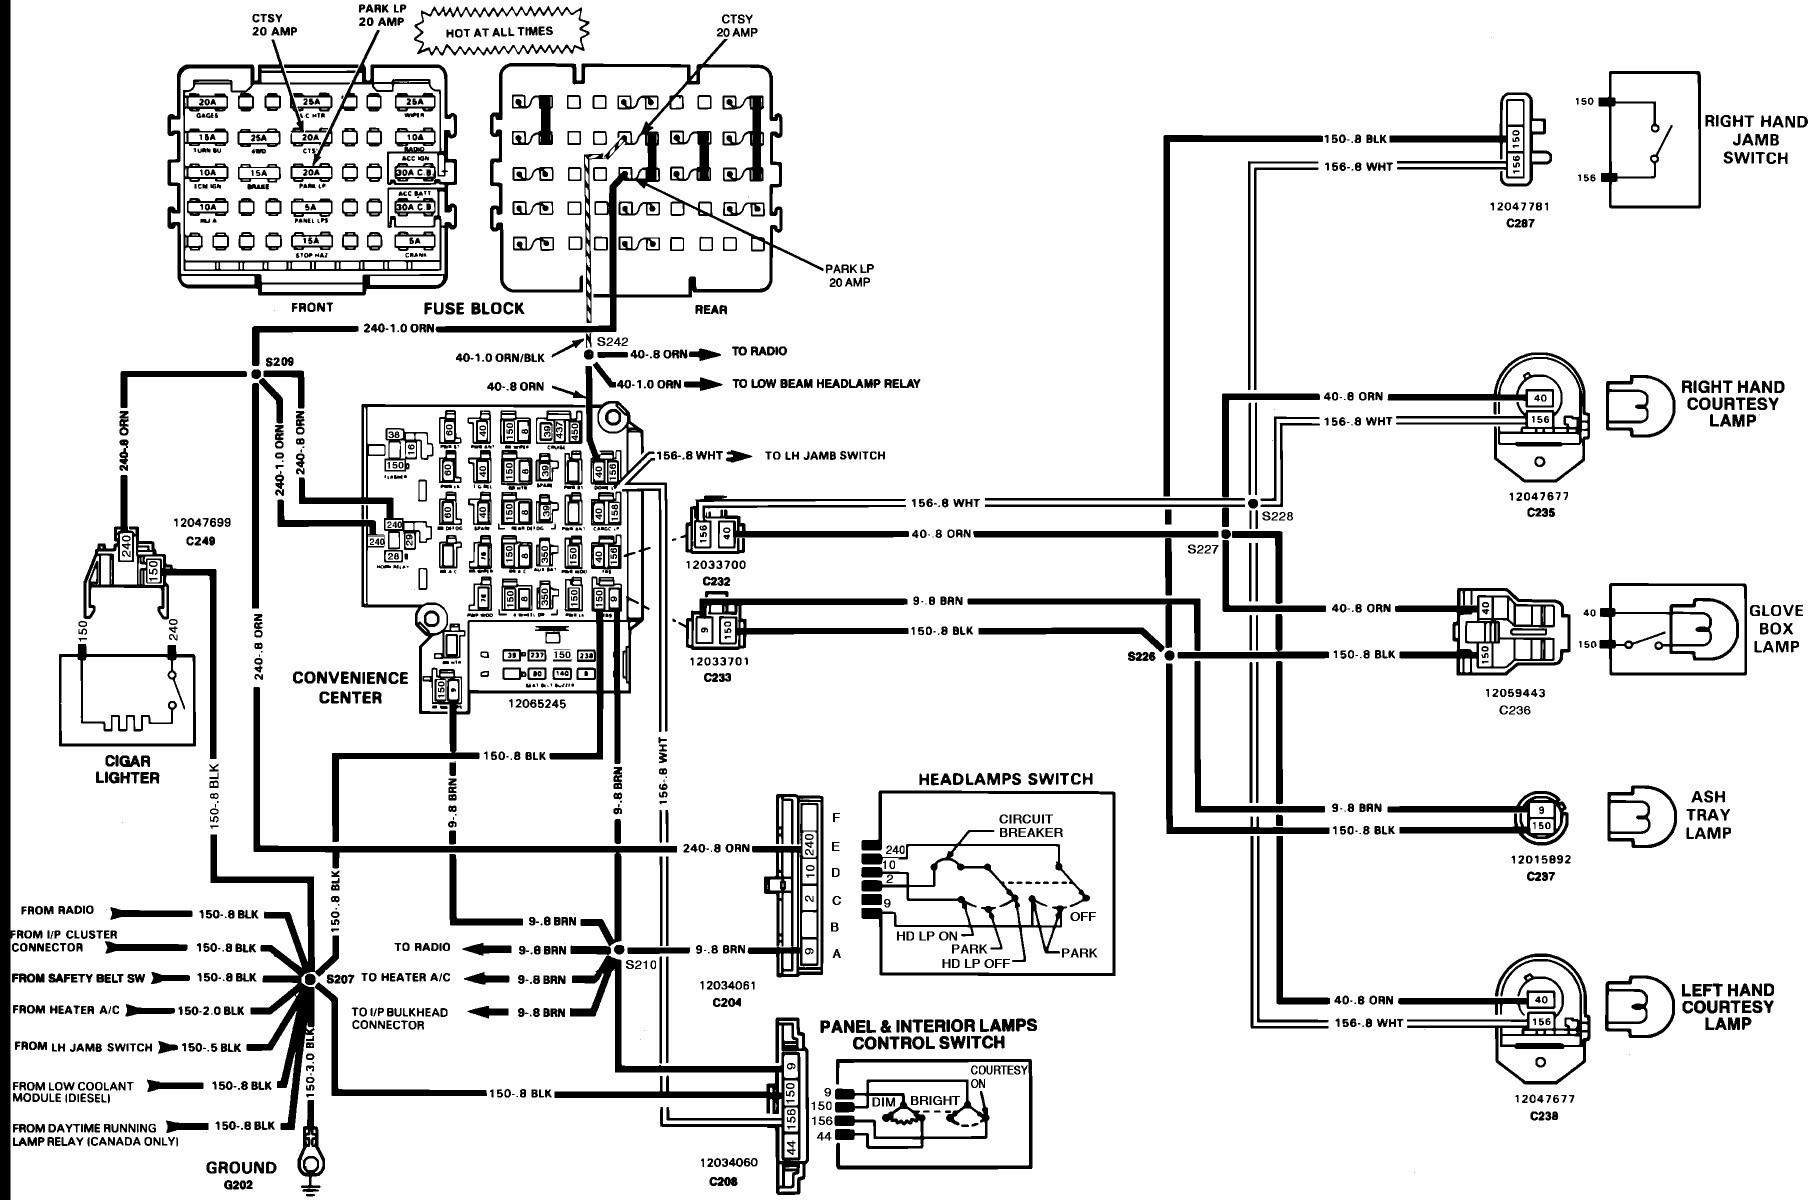 97 international 4700 fuse diagram wiring library88 98 chevy radio wiring diagram \u2022 wiring diagram for free